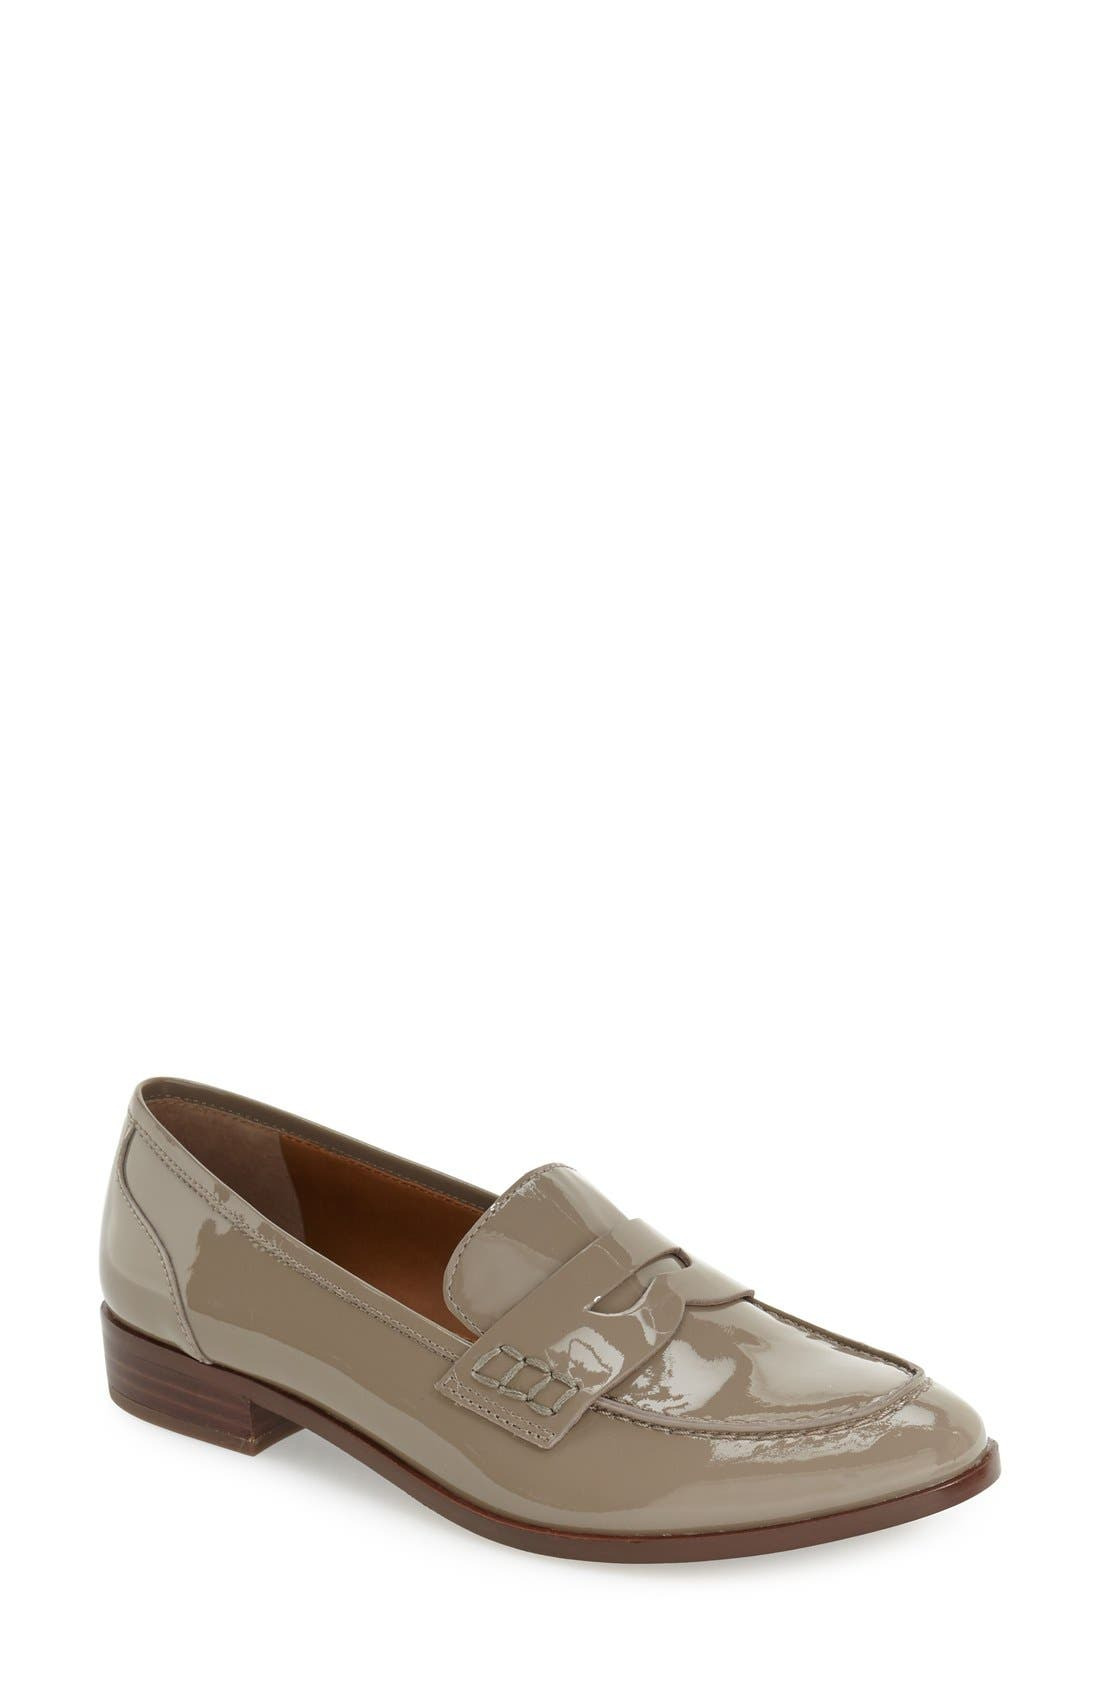 Main Image - SARTO by Franco Sarto 'Jolette' Penny Loafer (Women)